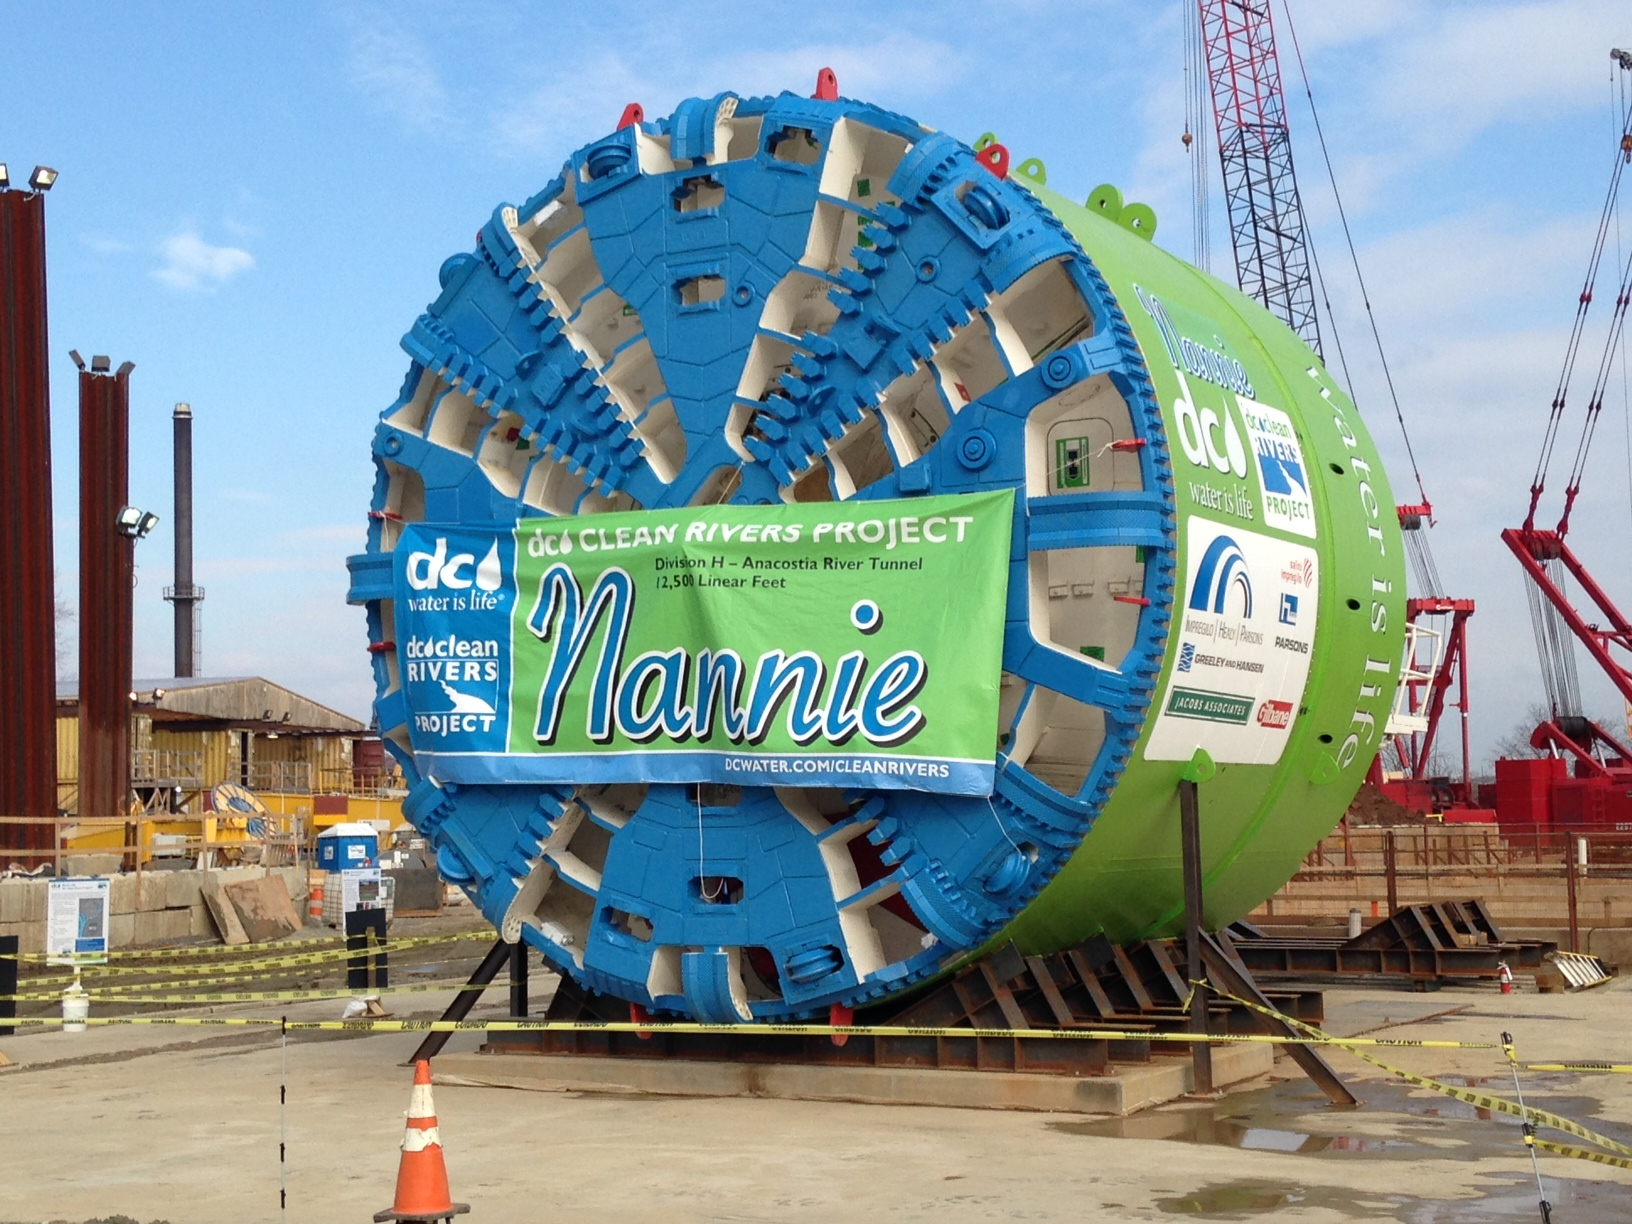 D.C. Water unveils machine to help clean-up Anacostia River